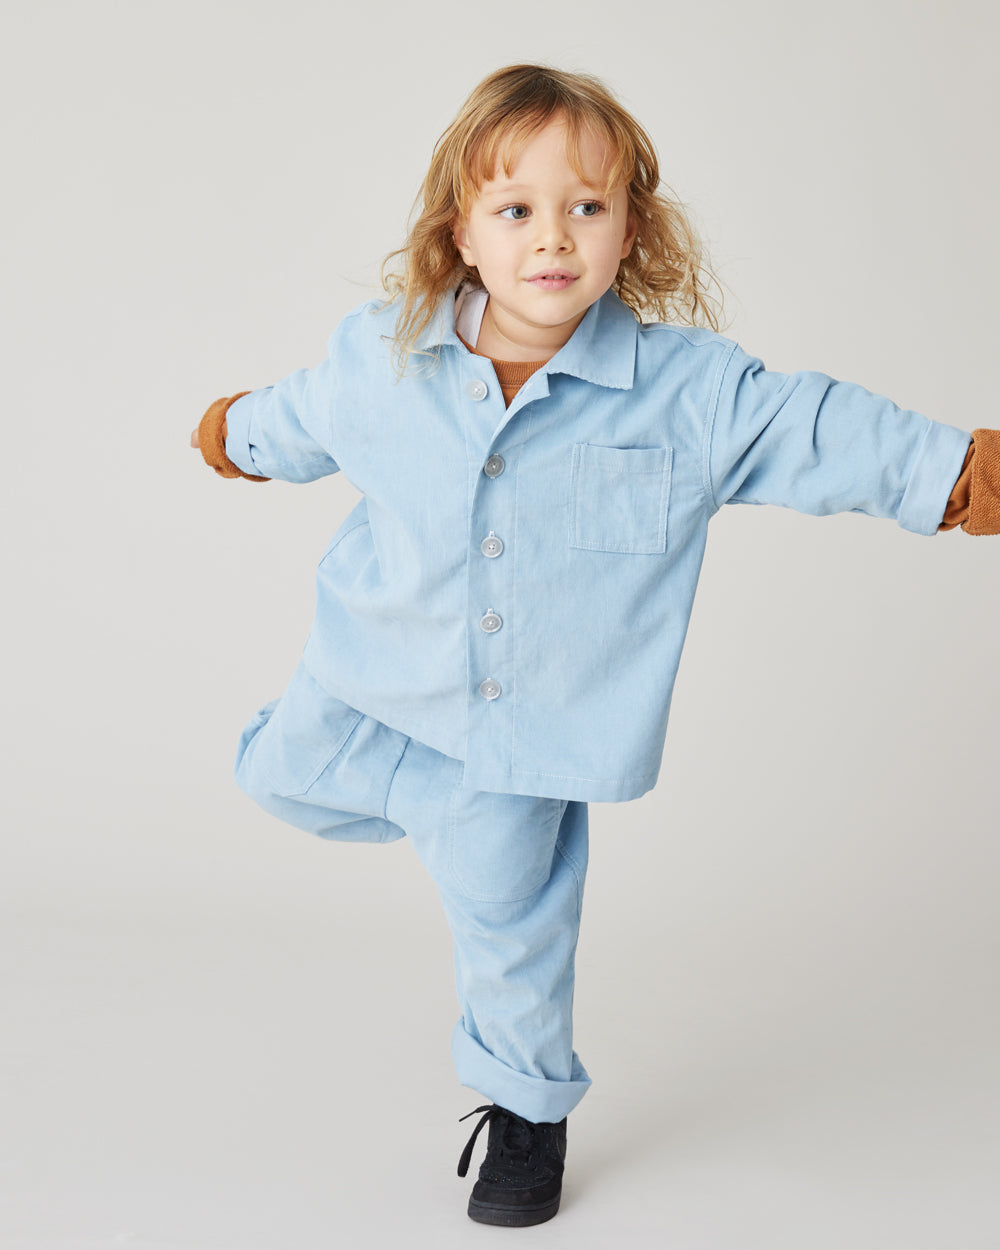 Seneca Shirt in Baby Blue